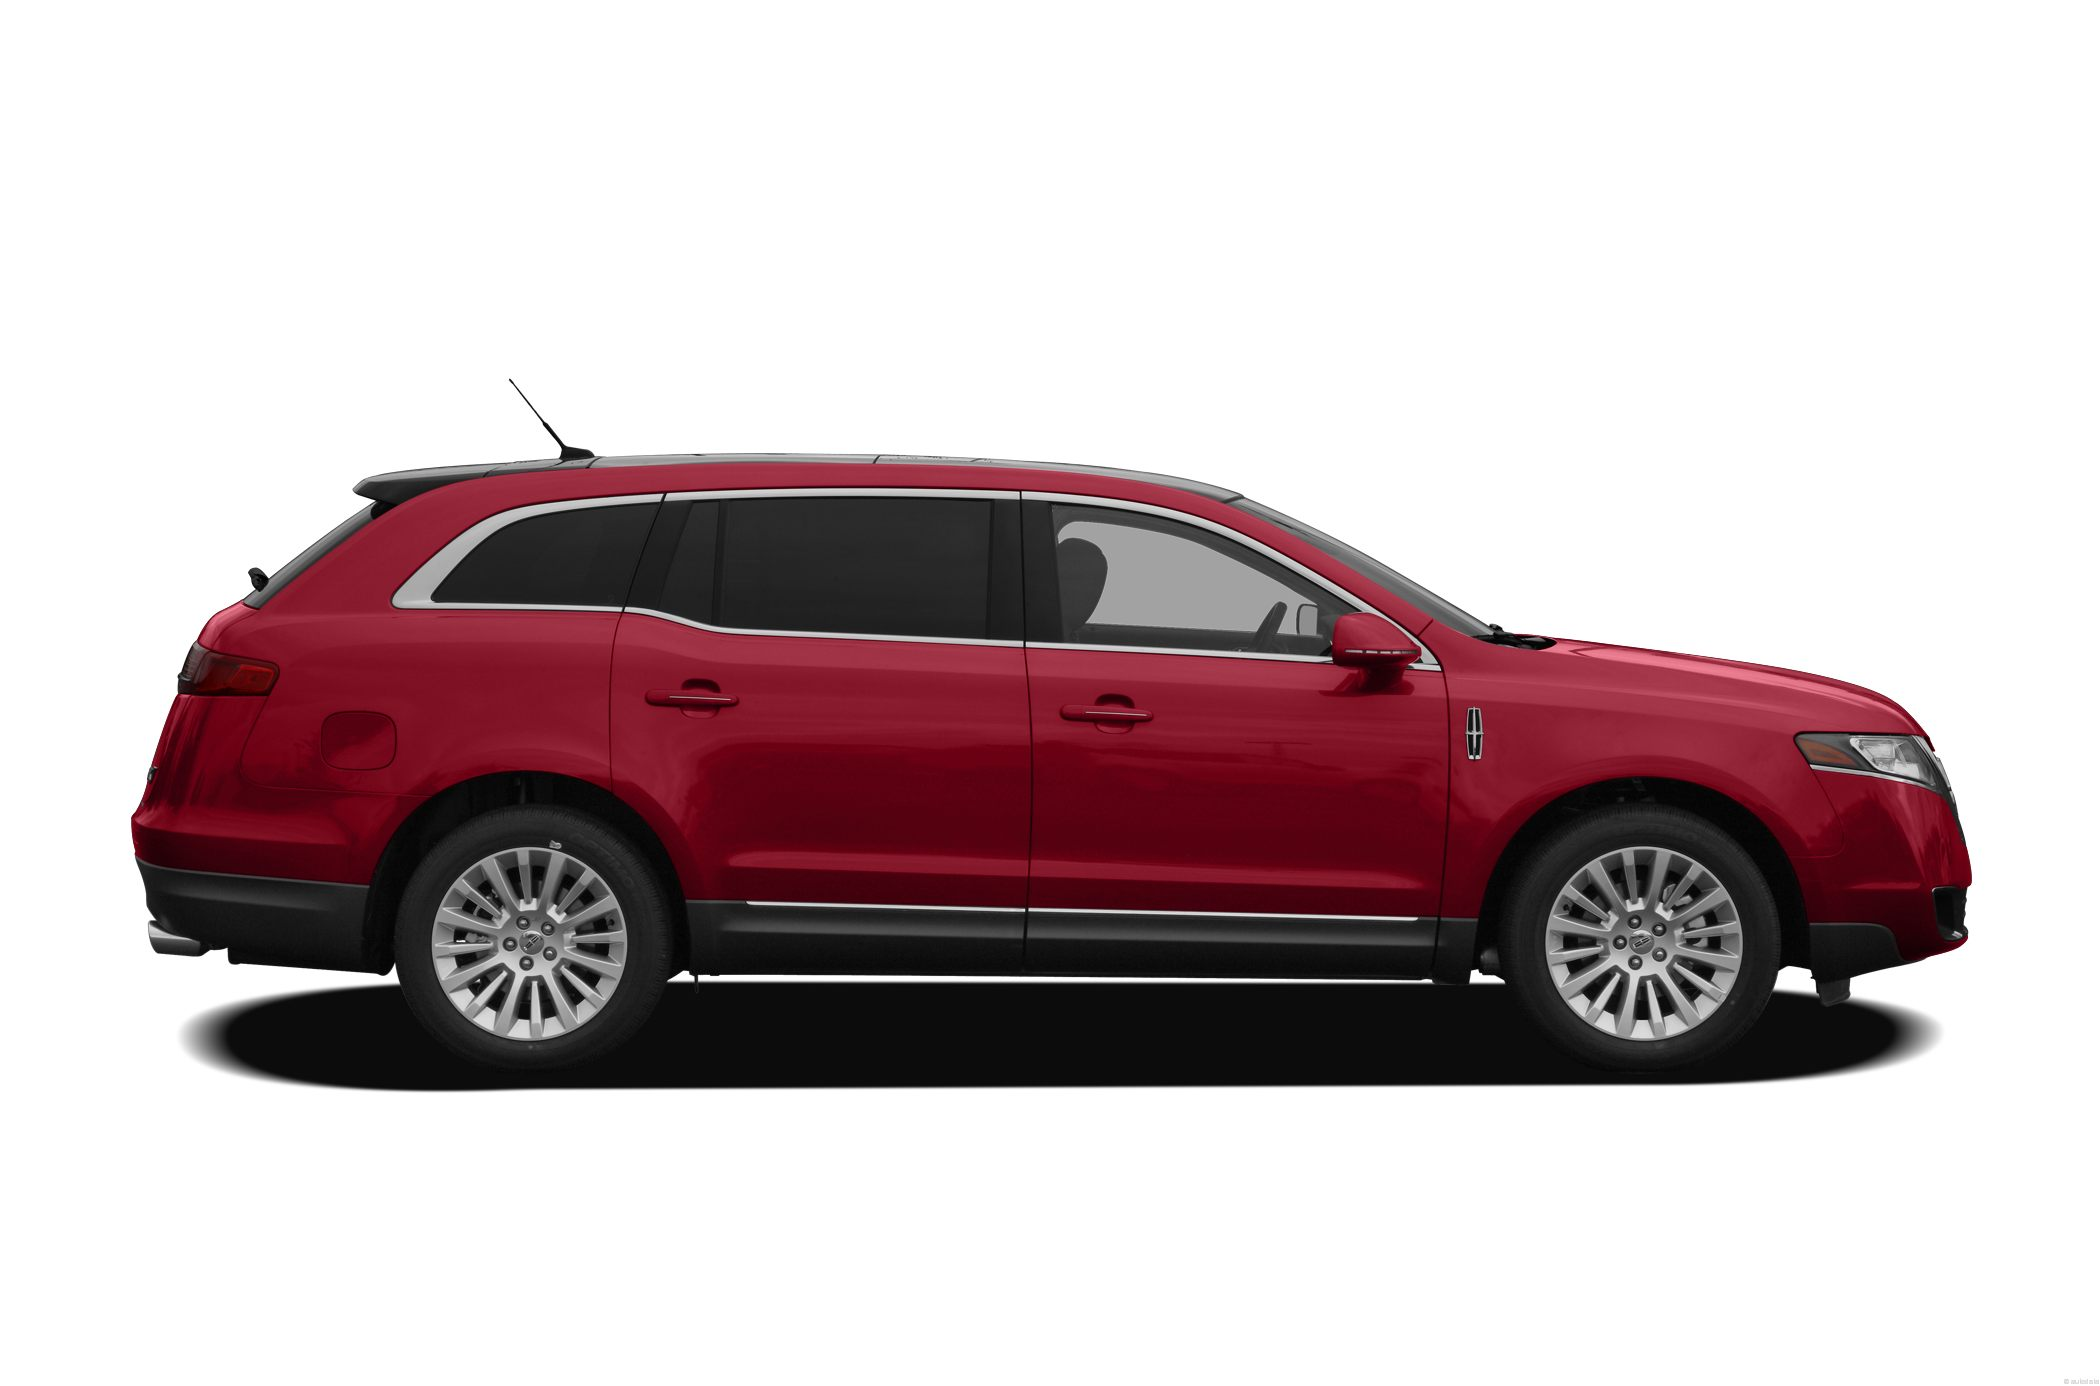 Lincoln mkt photo - 6